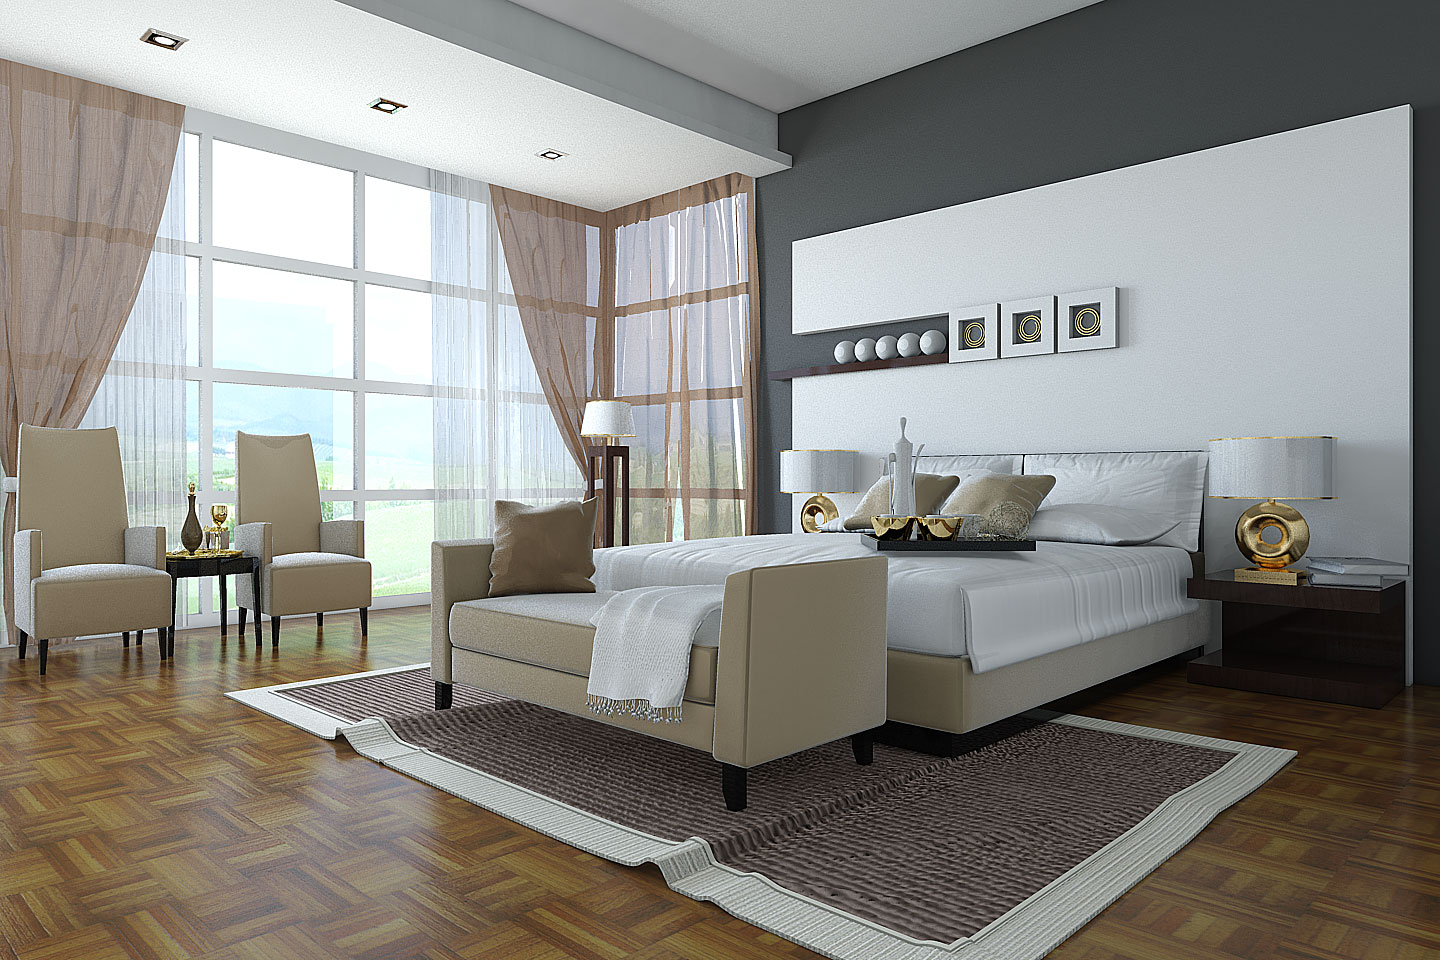 Fabulous Classic Bedroom Design 1440 x 960 · 311 kB · jpeg